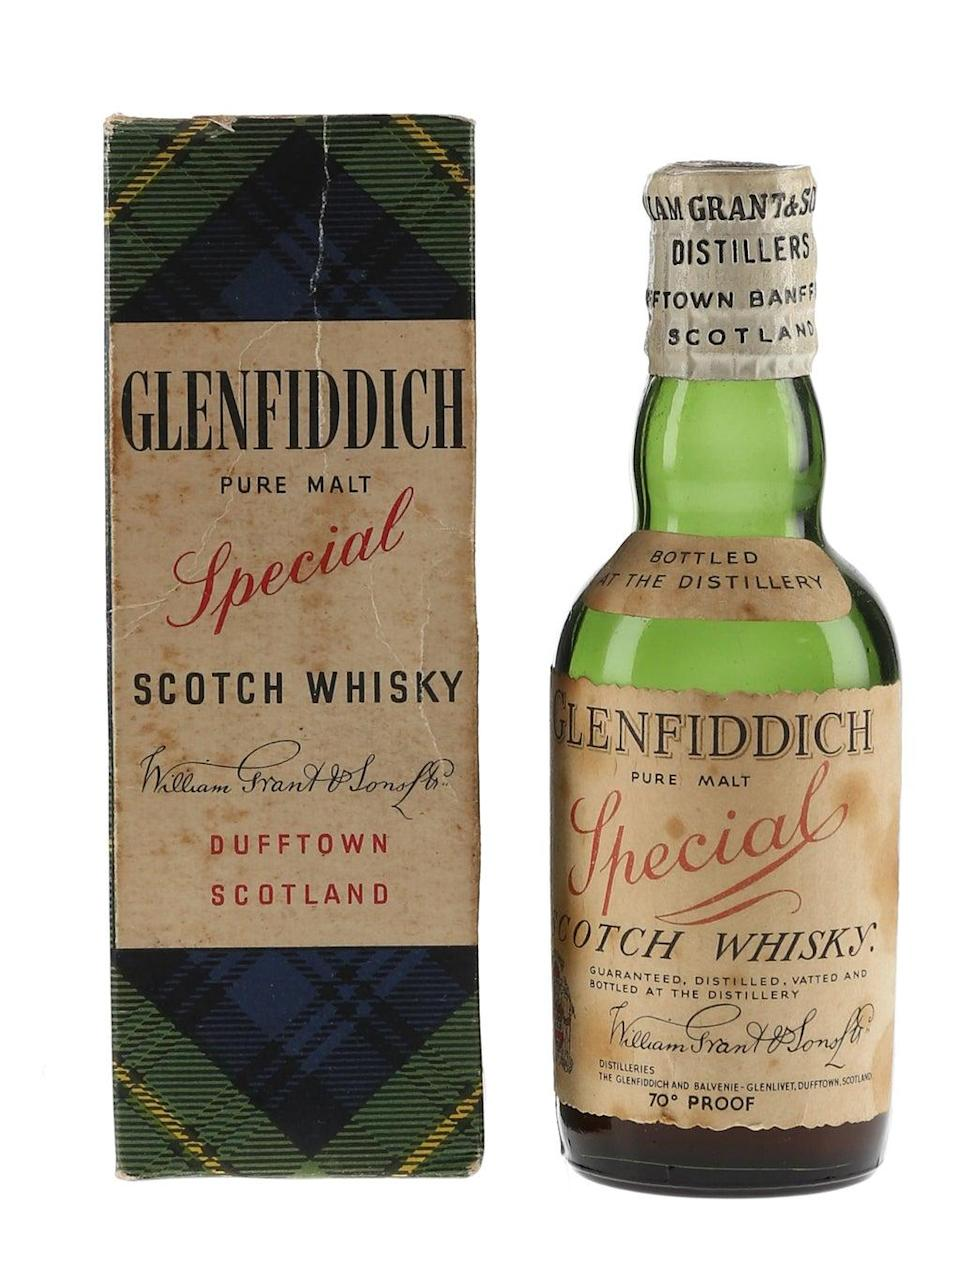 The Glenfiddich and box sold for £2530 (Whisky.Auction/PA)